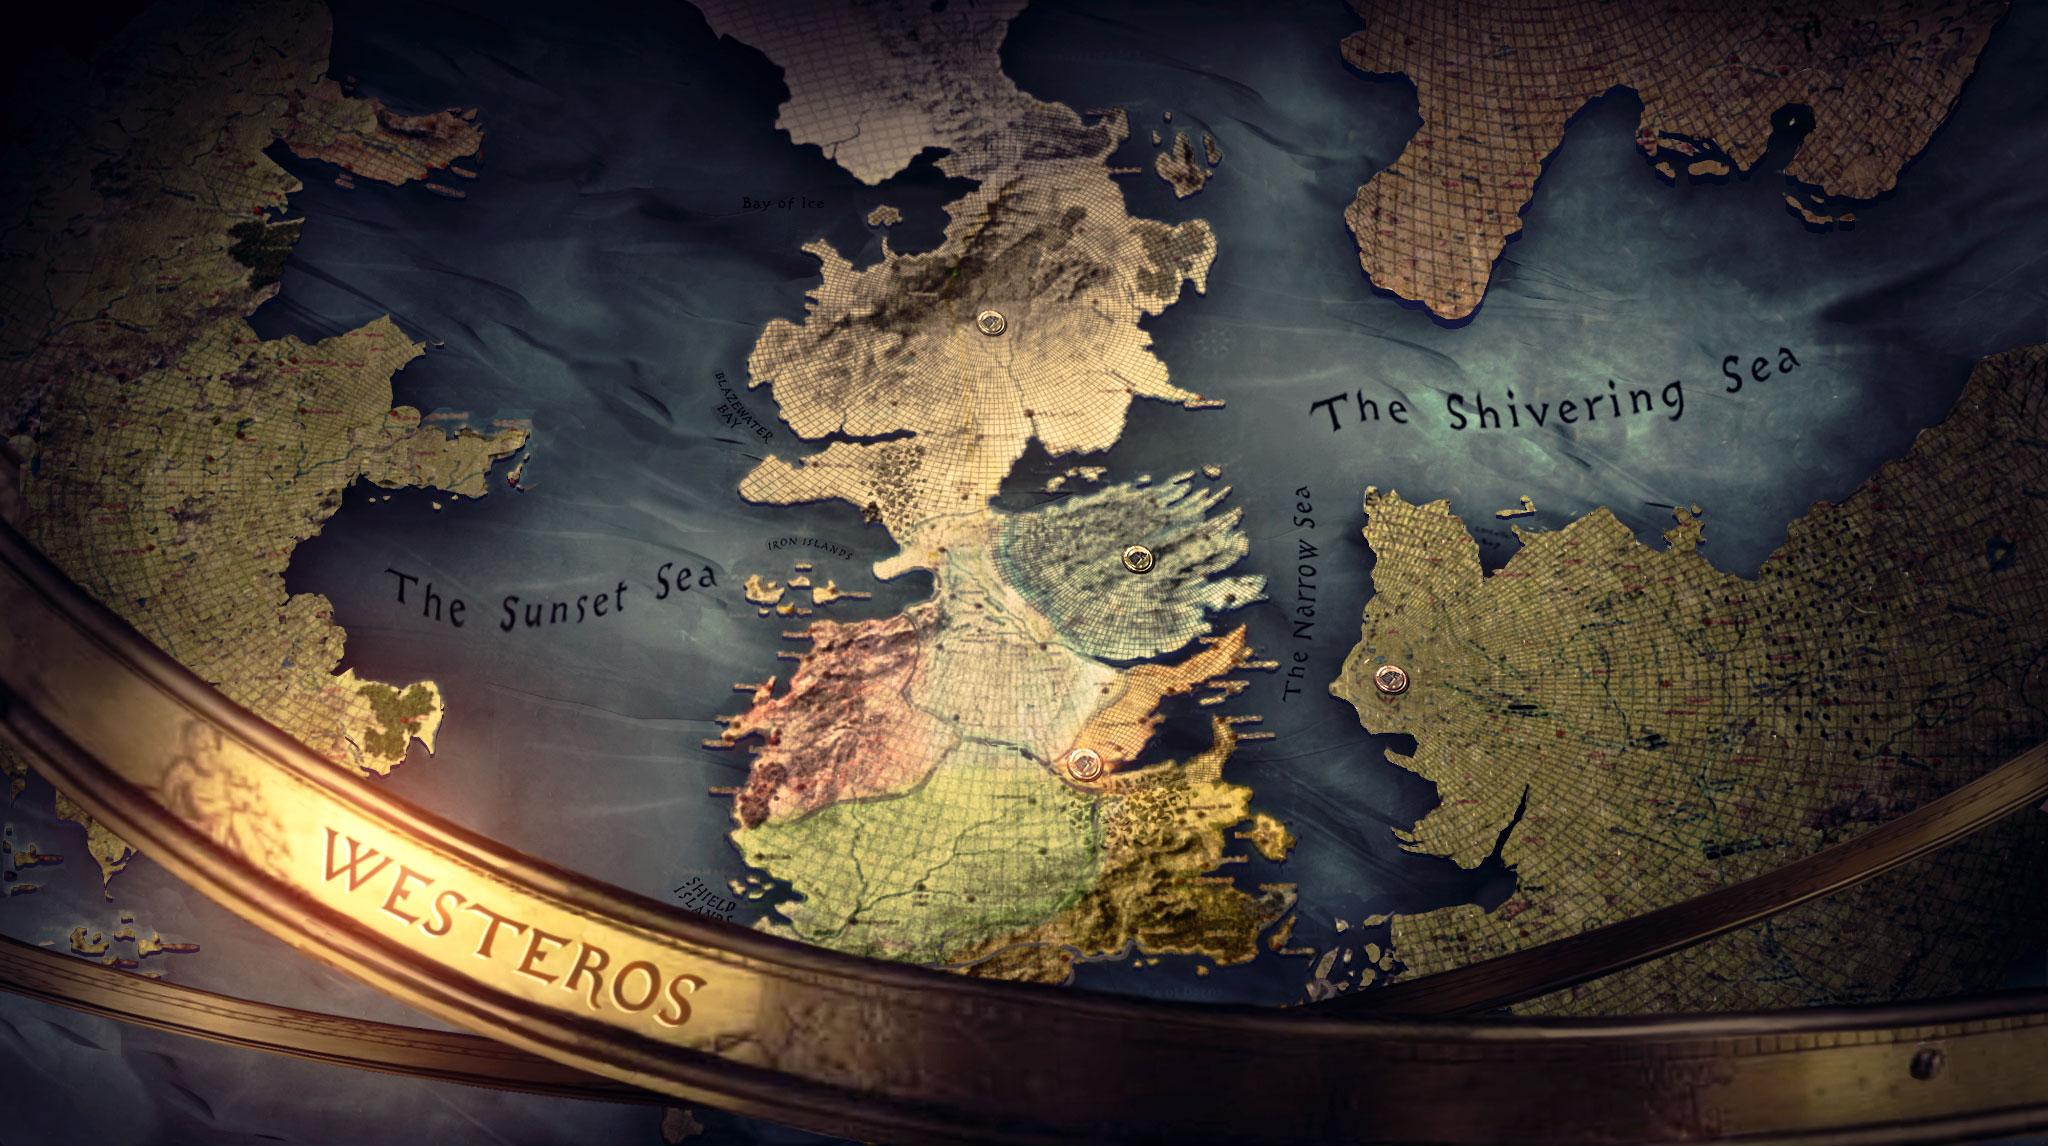 Game of thrones map sequence intended for scene transitions the we did some concept sketches around that idea but when the pilot was shot they called us in and said people are confused about where they are gumiabroncs Images